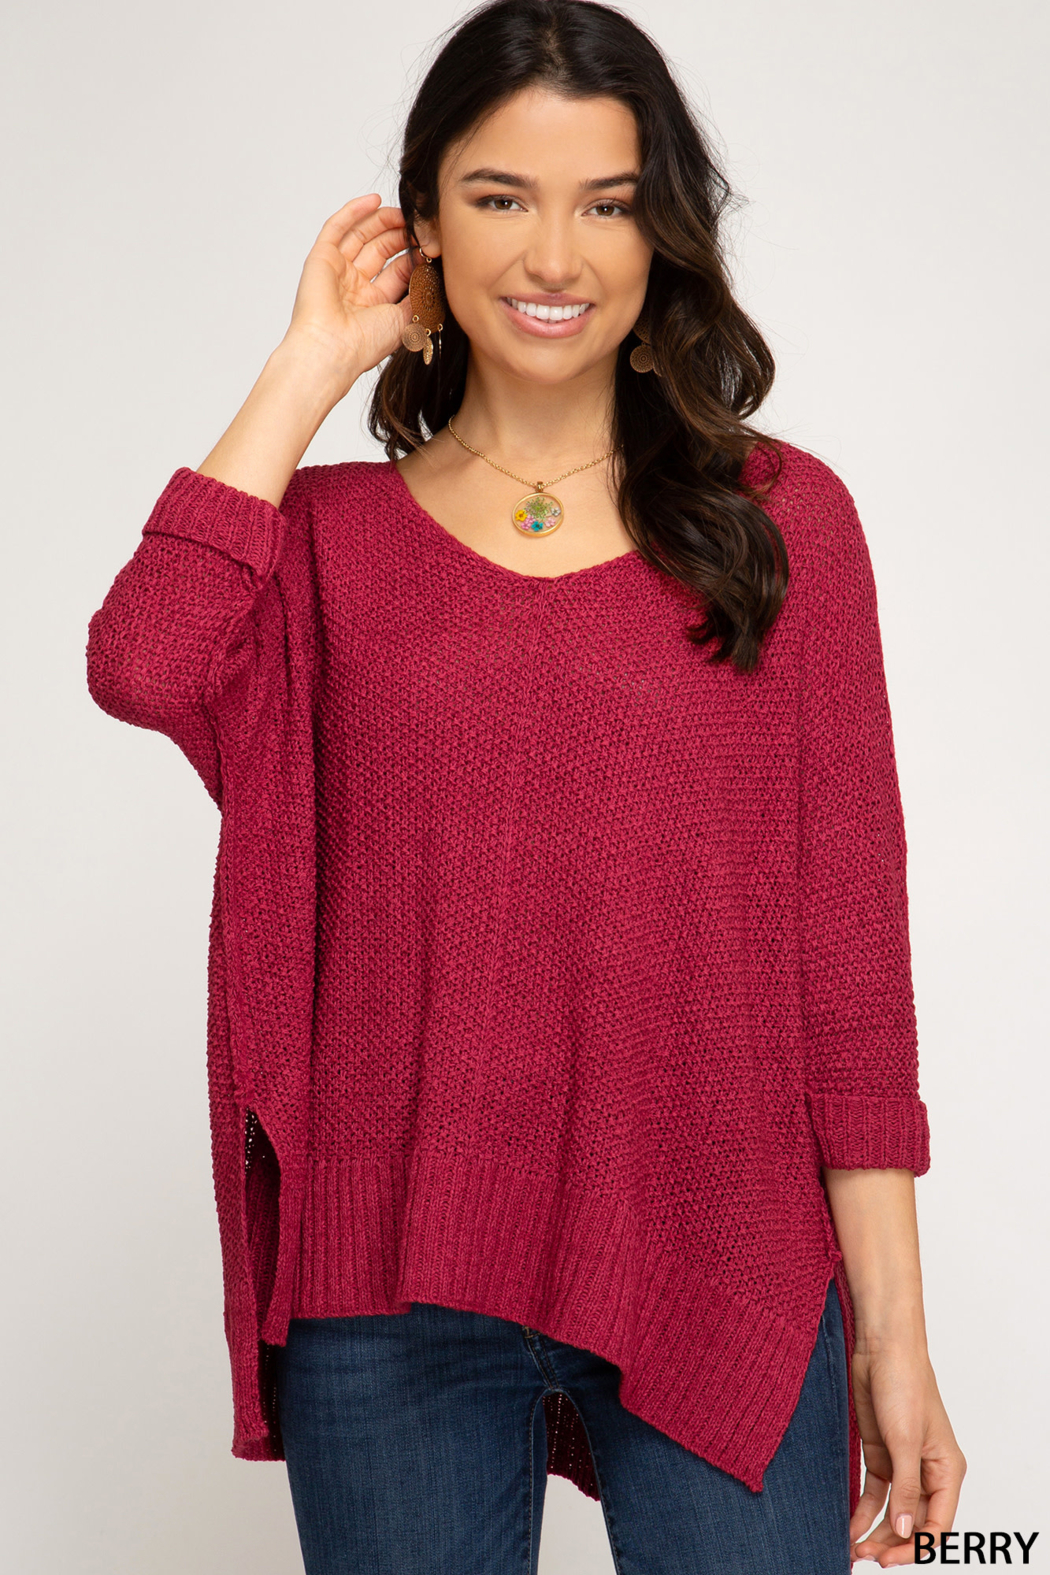 She and Sky 3/4 SLEEVE HILOW KNIT SWEATER TOP - Front Cropped Image